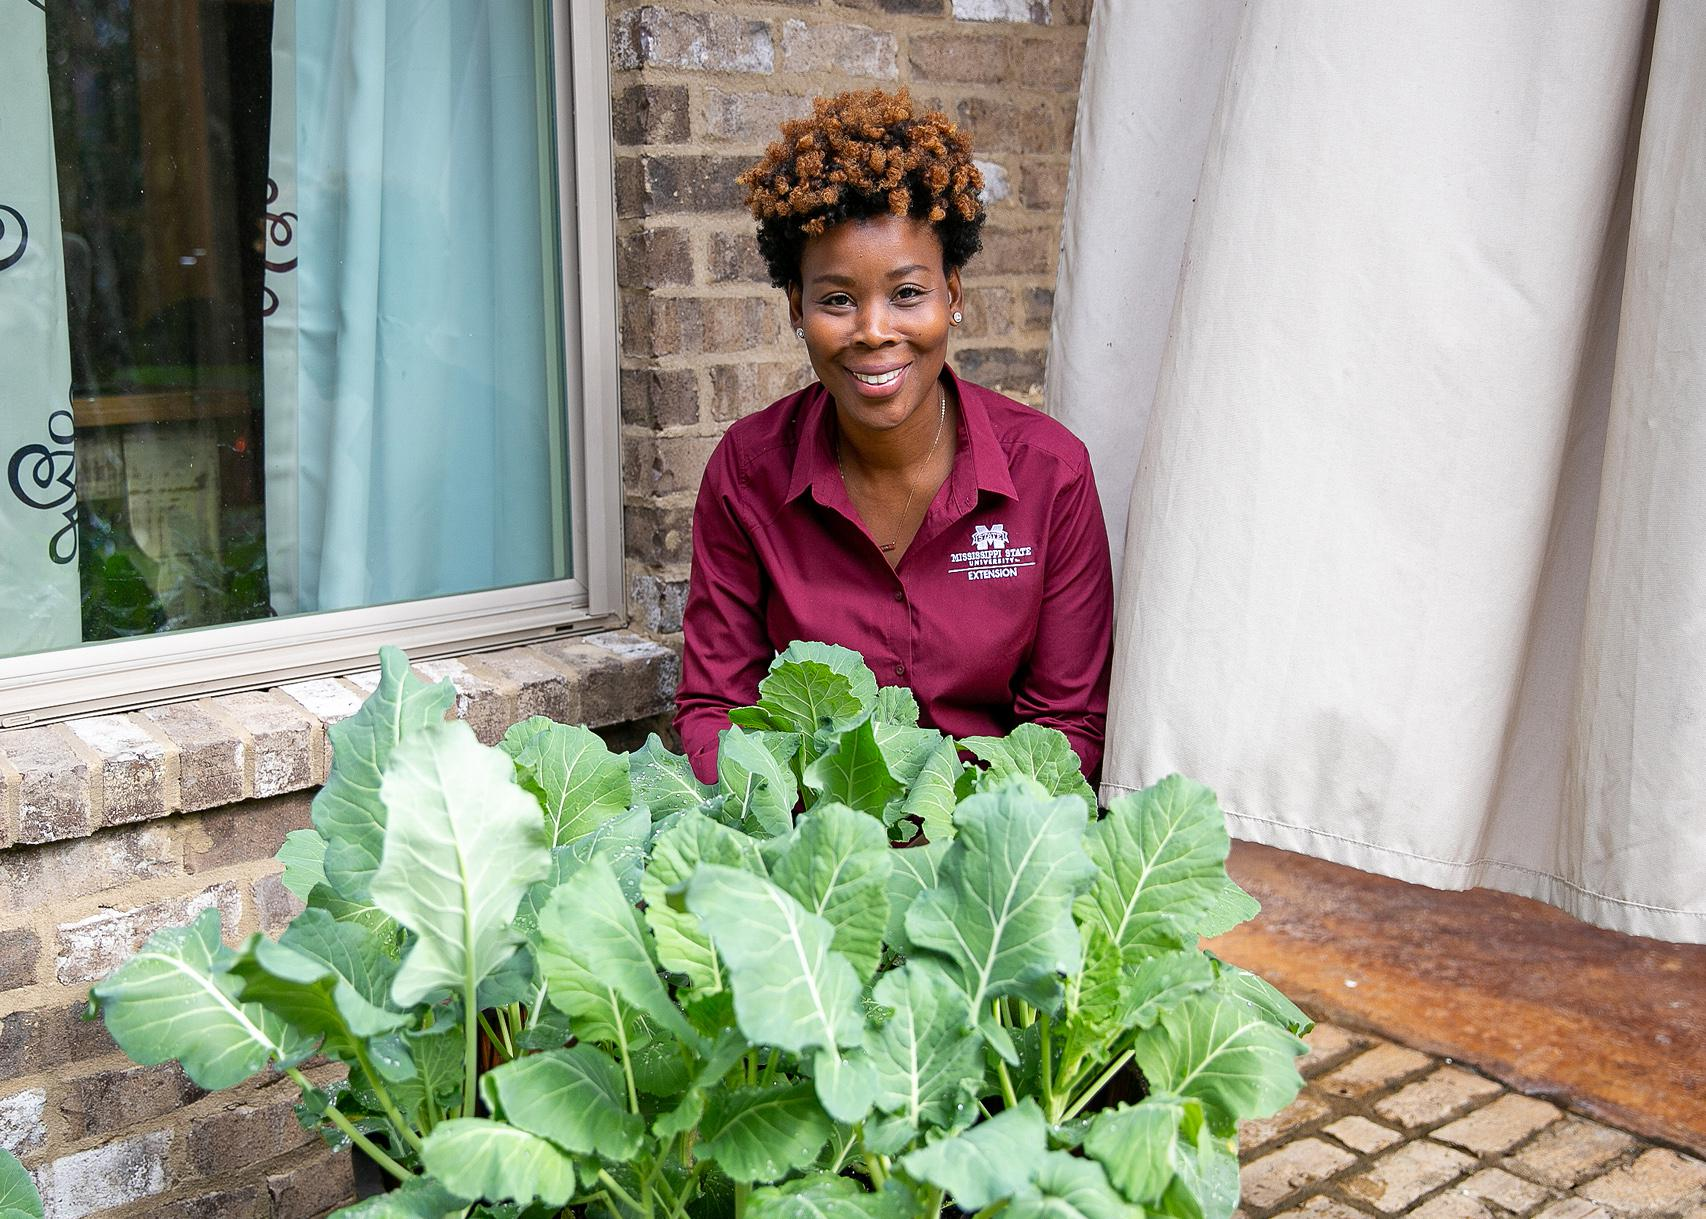 A woman sits on a patio behind a container where greens are growing.